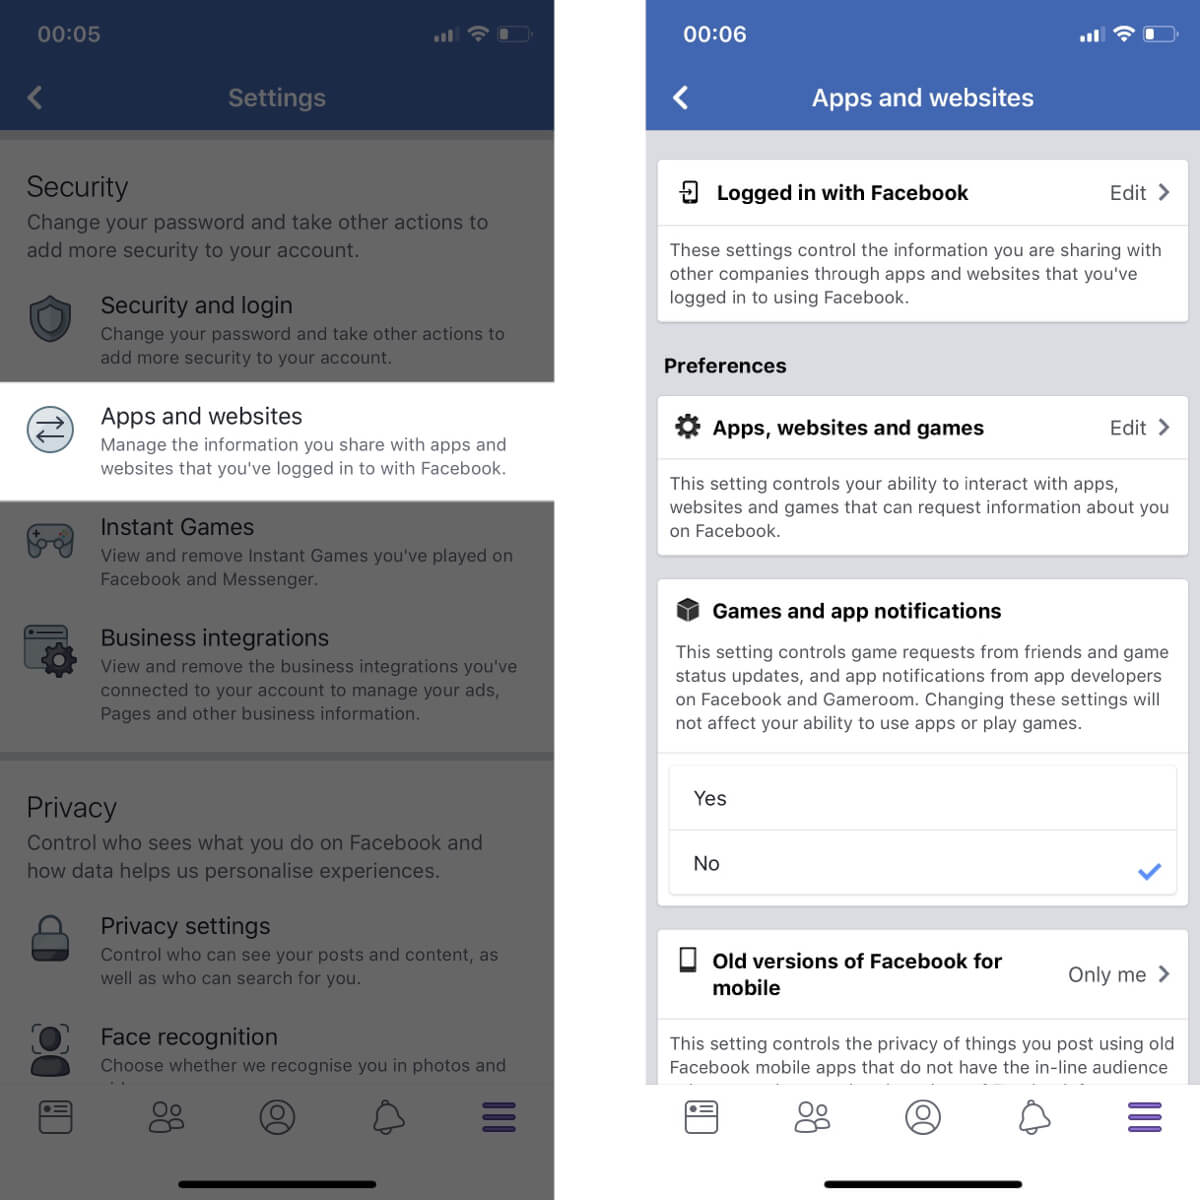 Screenshots showing how to access your app and website settings on Facebook.